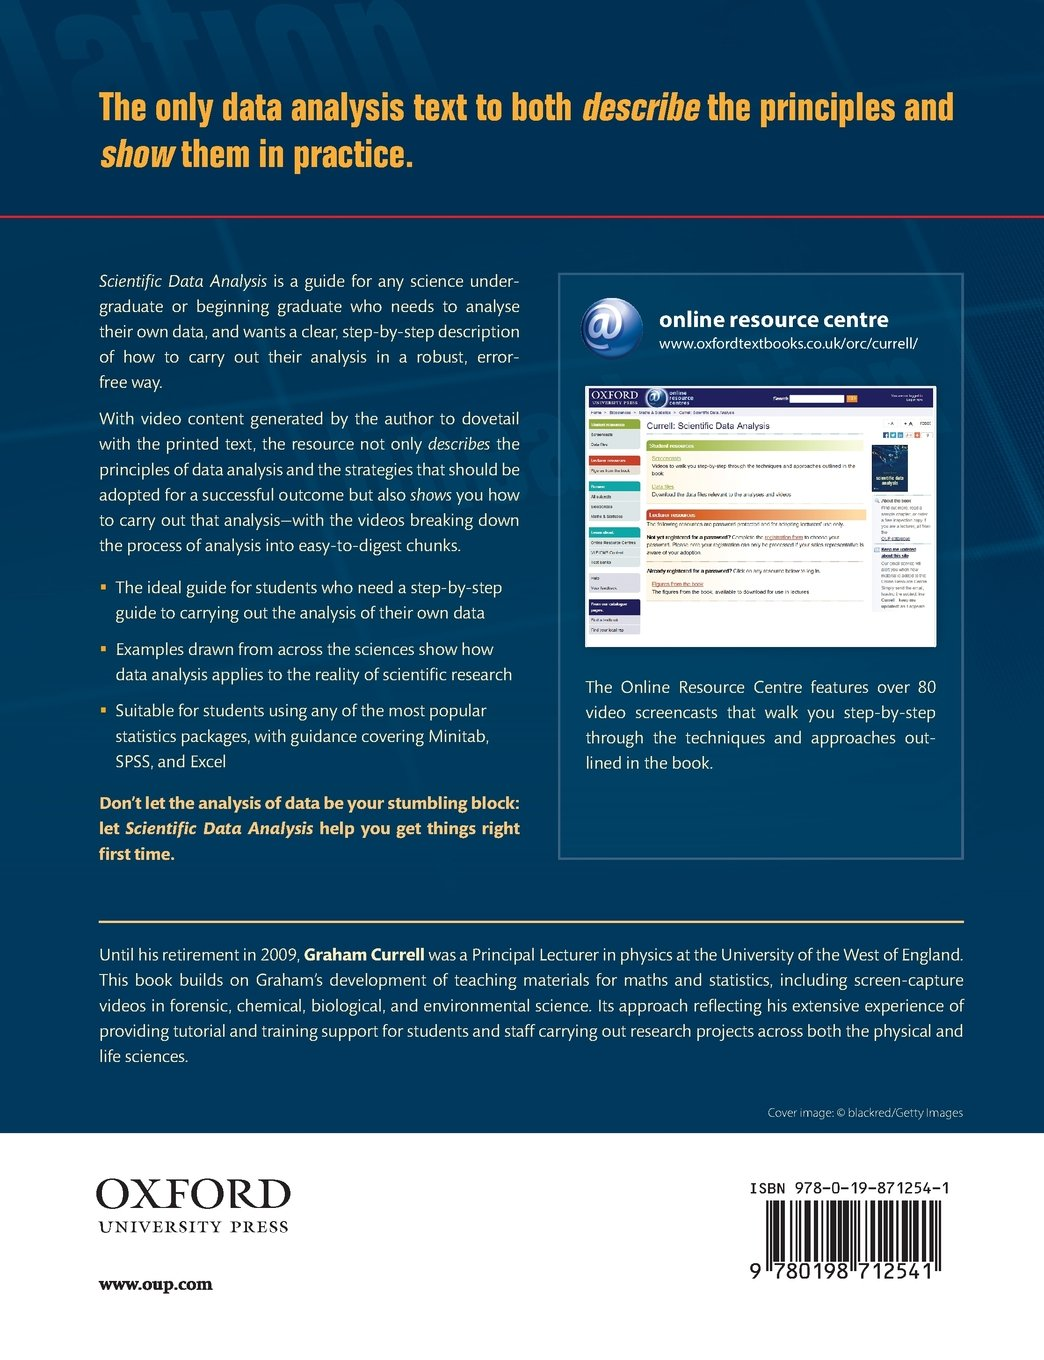 Scientific Data Analysis by Oxford University Press